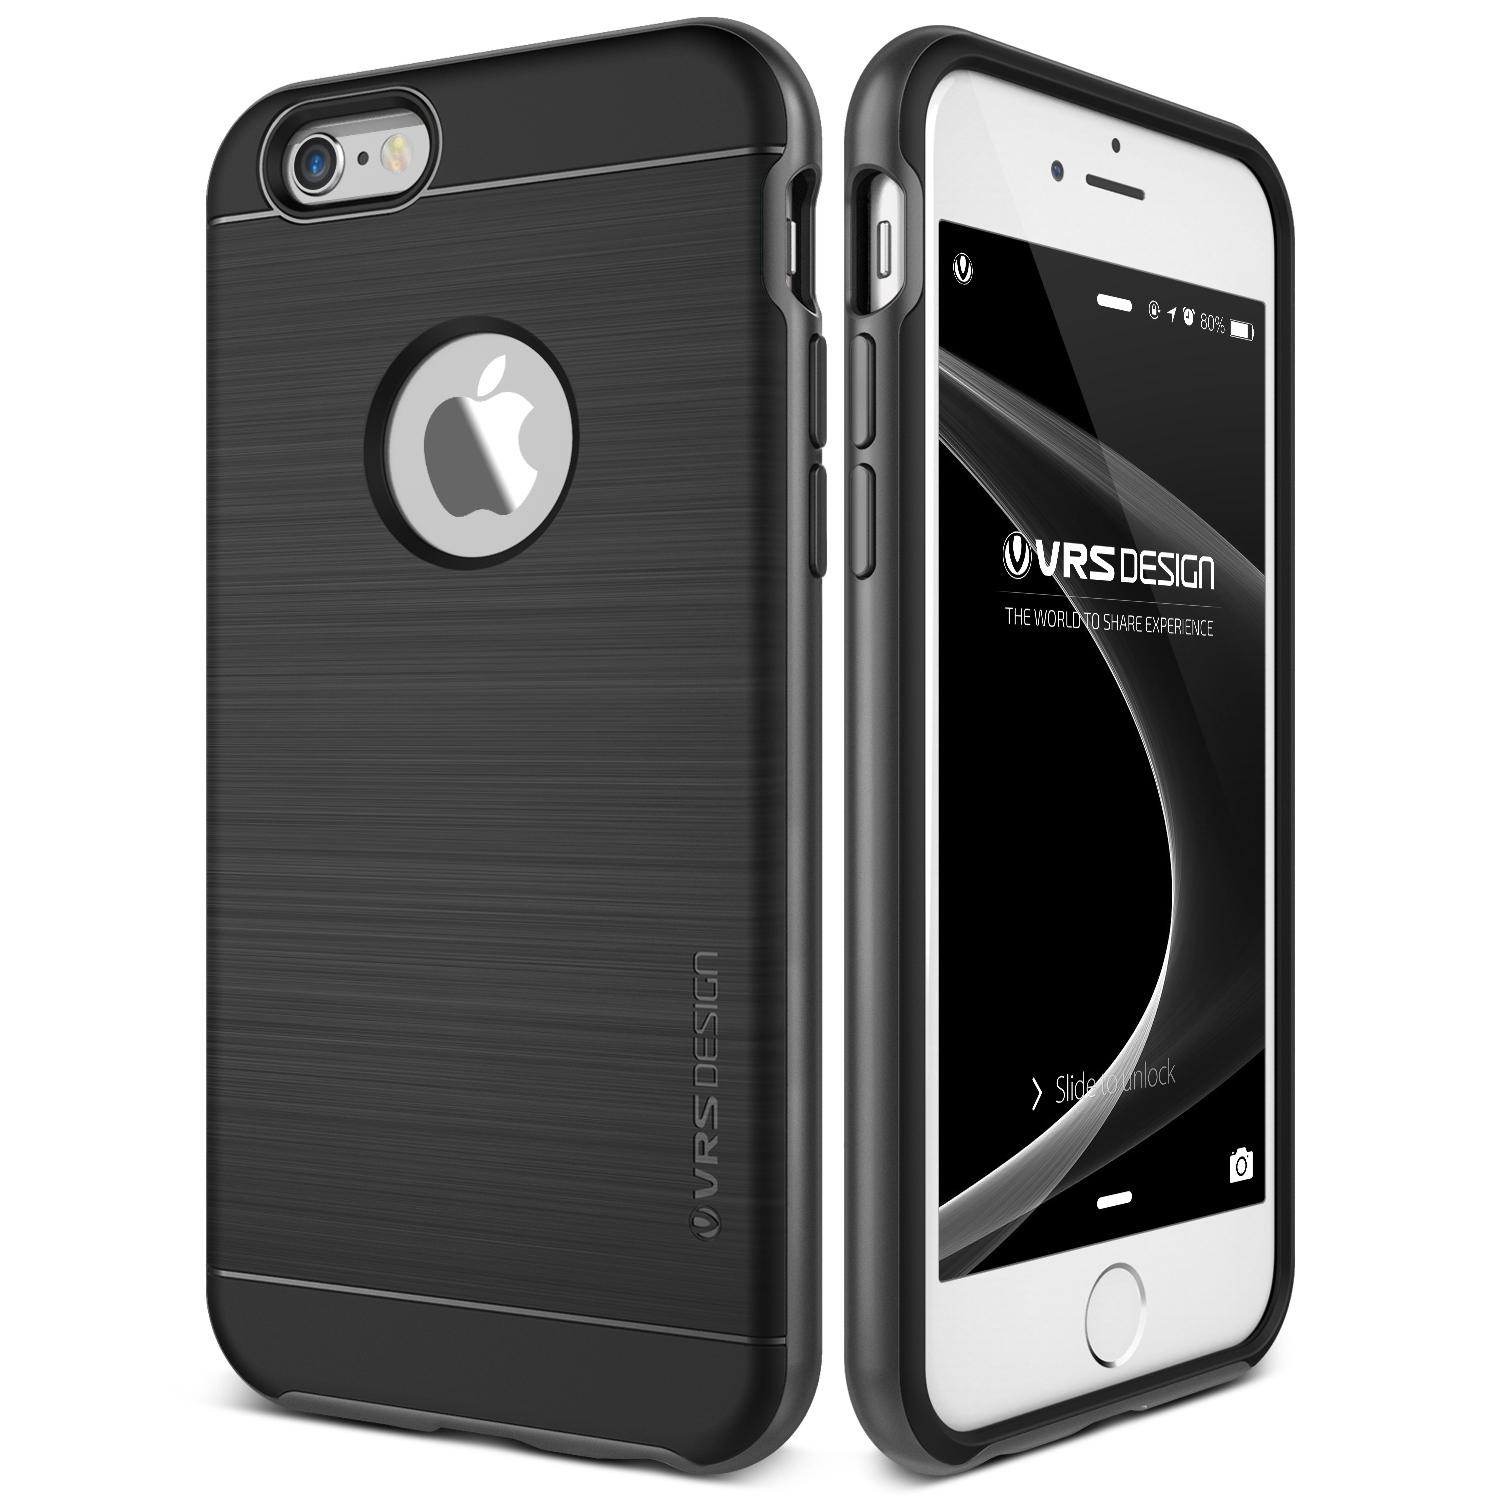 iPhone 6S Plus Case Cover | Slim Rugged Protection | VRS Design High Pro Shield for Apple iPhone 6S Plus